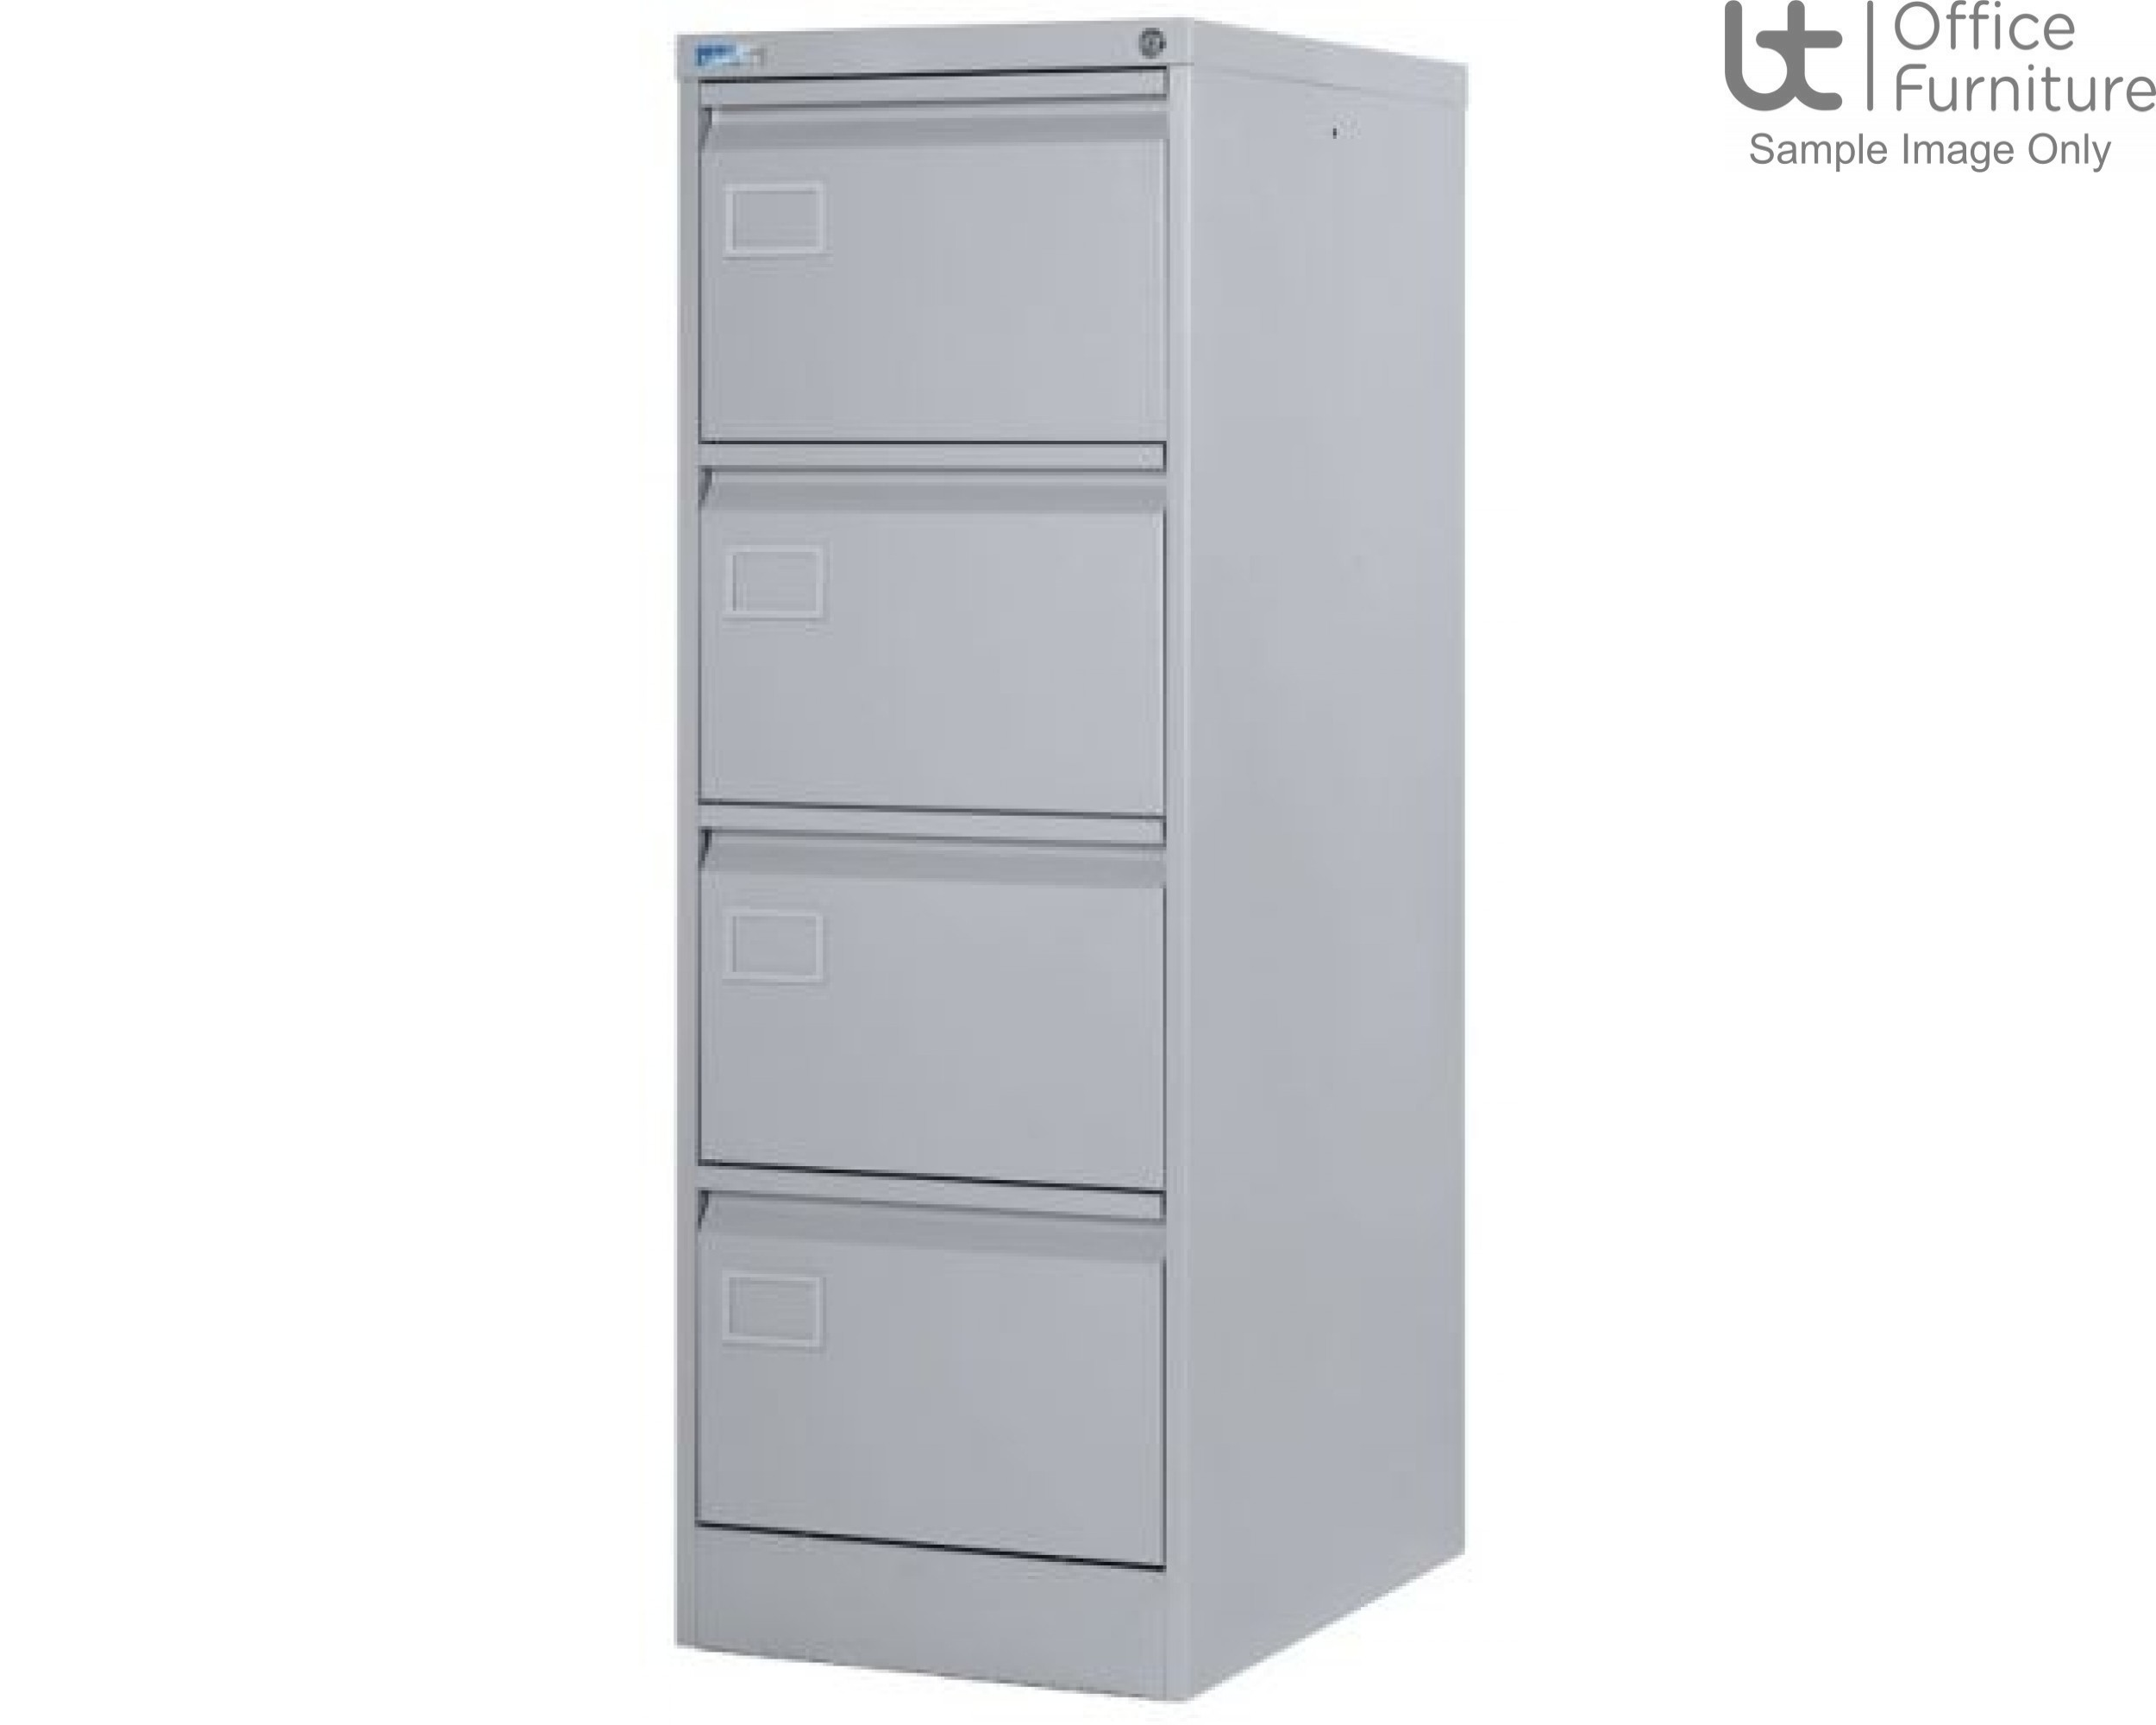 Silverline Executive 4 Drawer Filing Cabinet